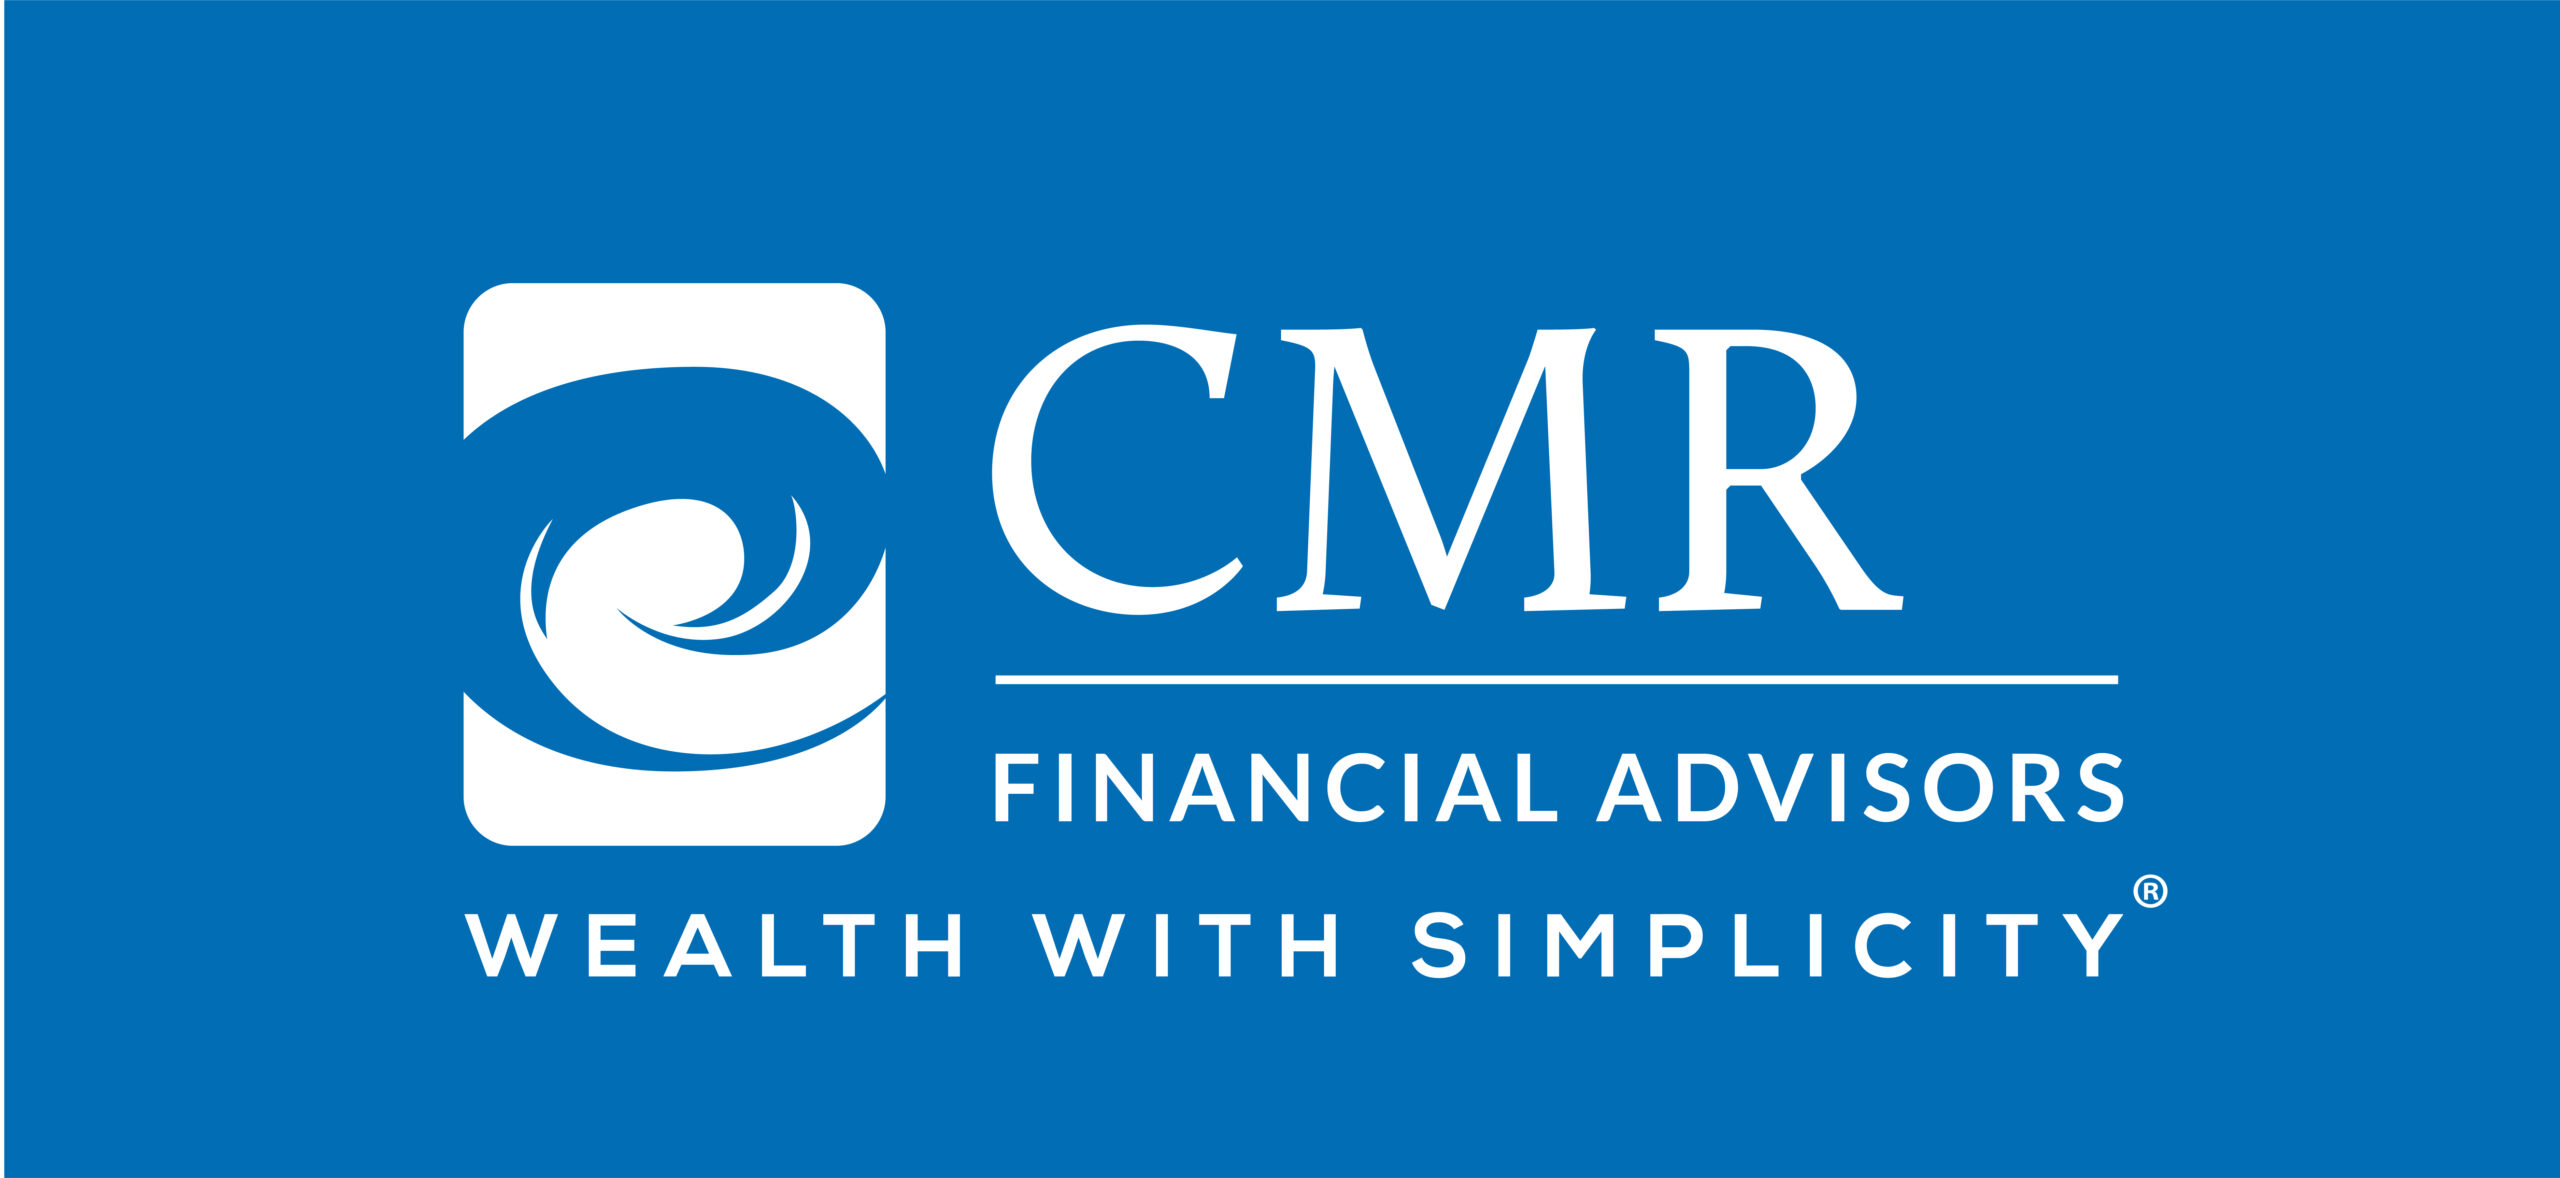 CMR Financial Advisor, Inc.